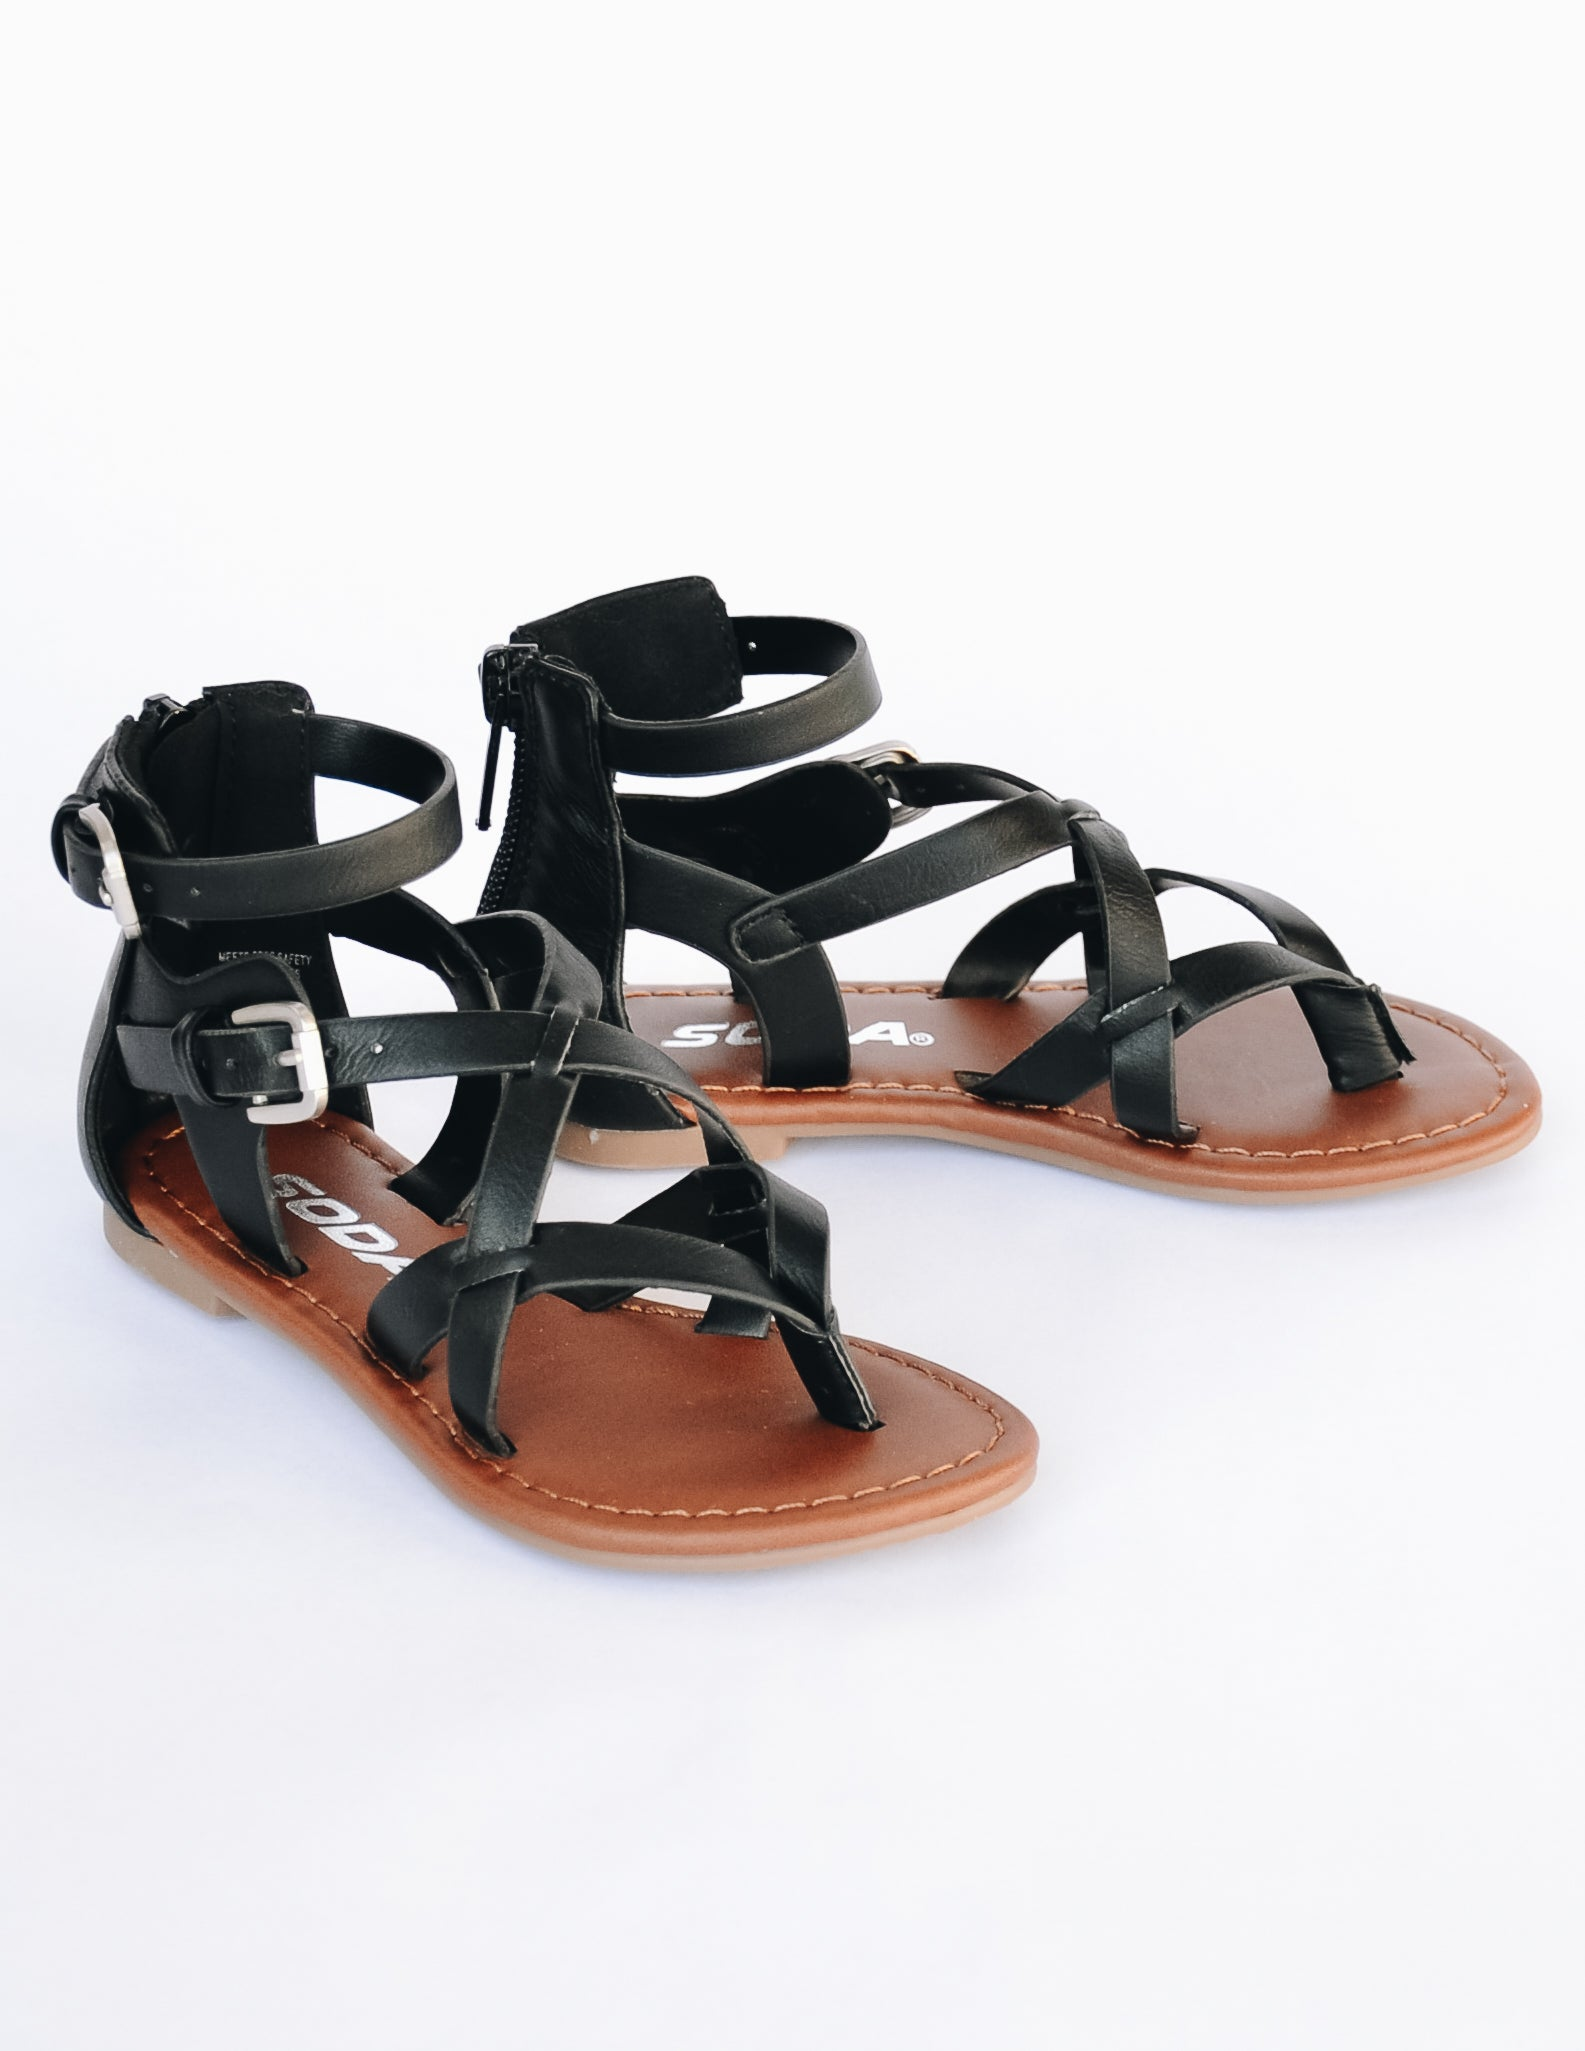 Black strappy sandal with two adjustable buckles and back zipper